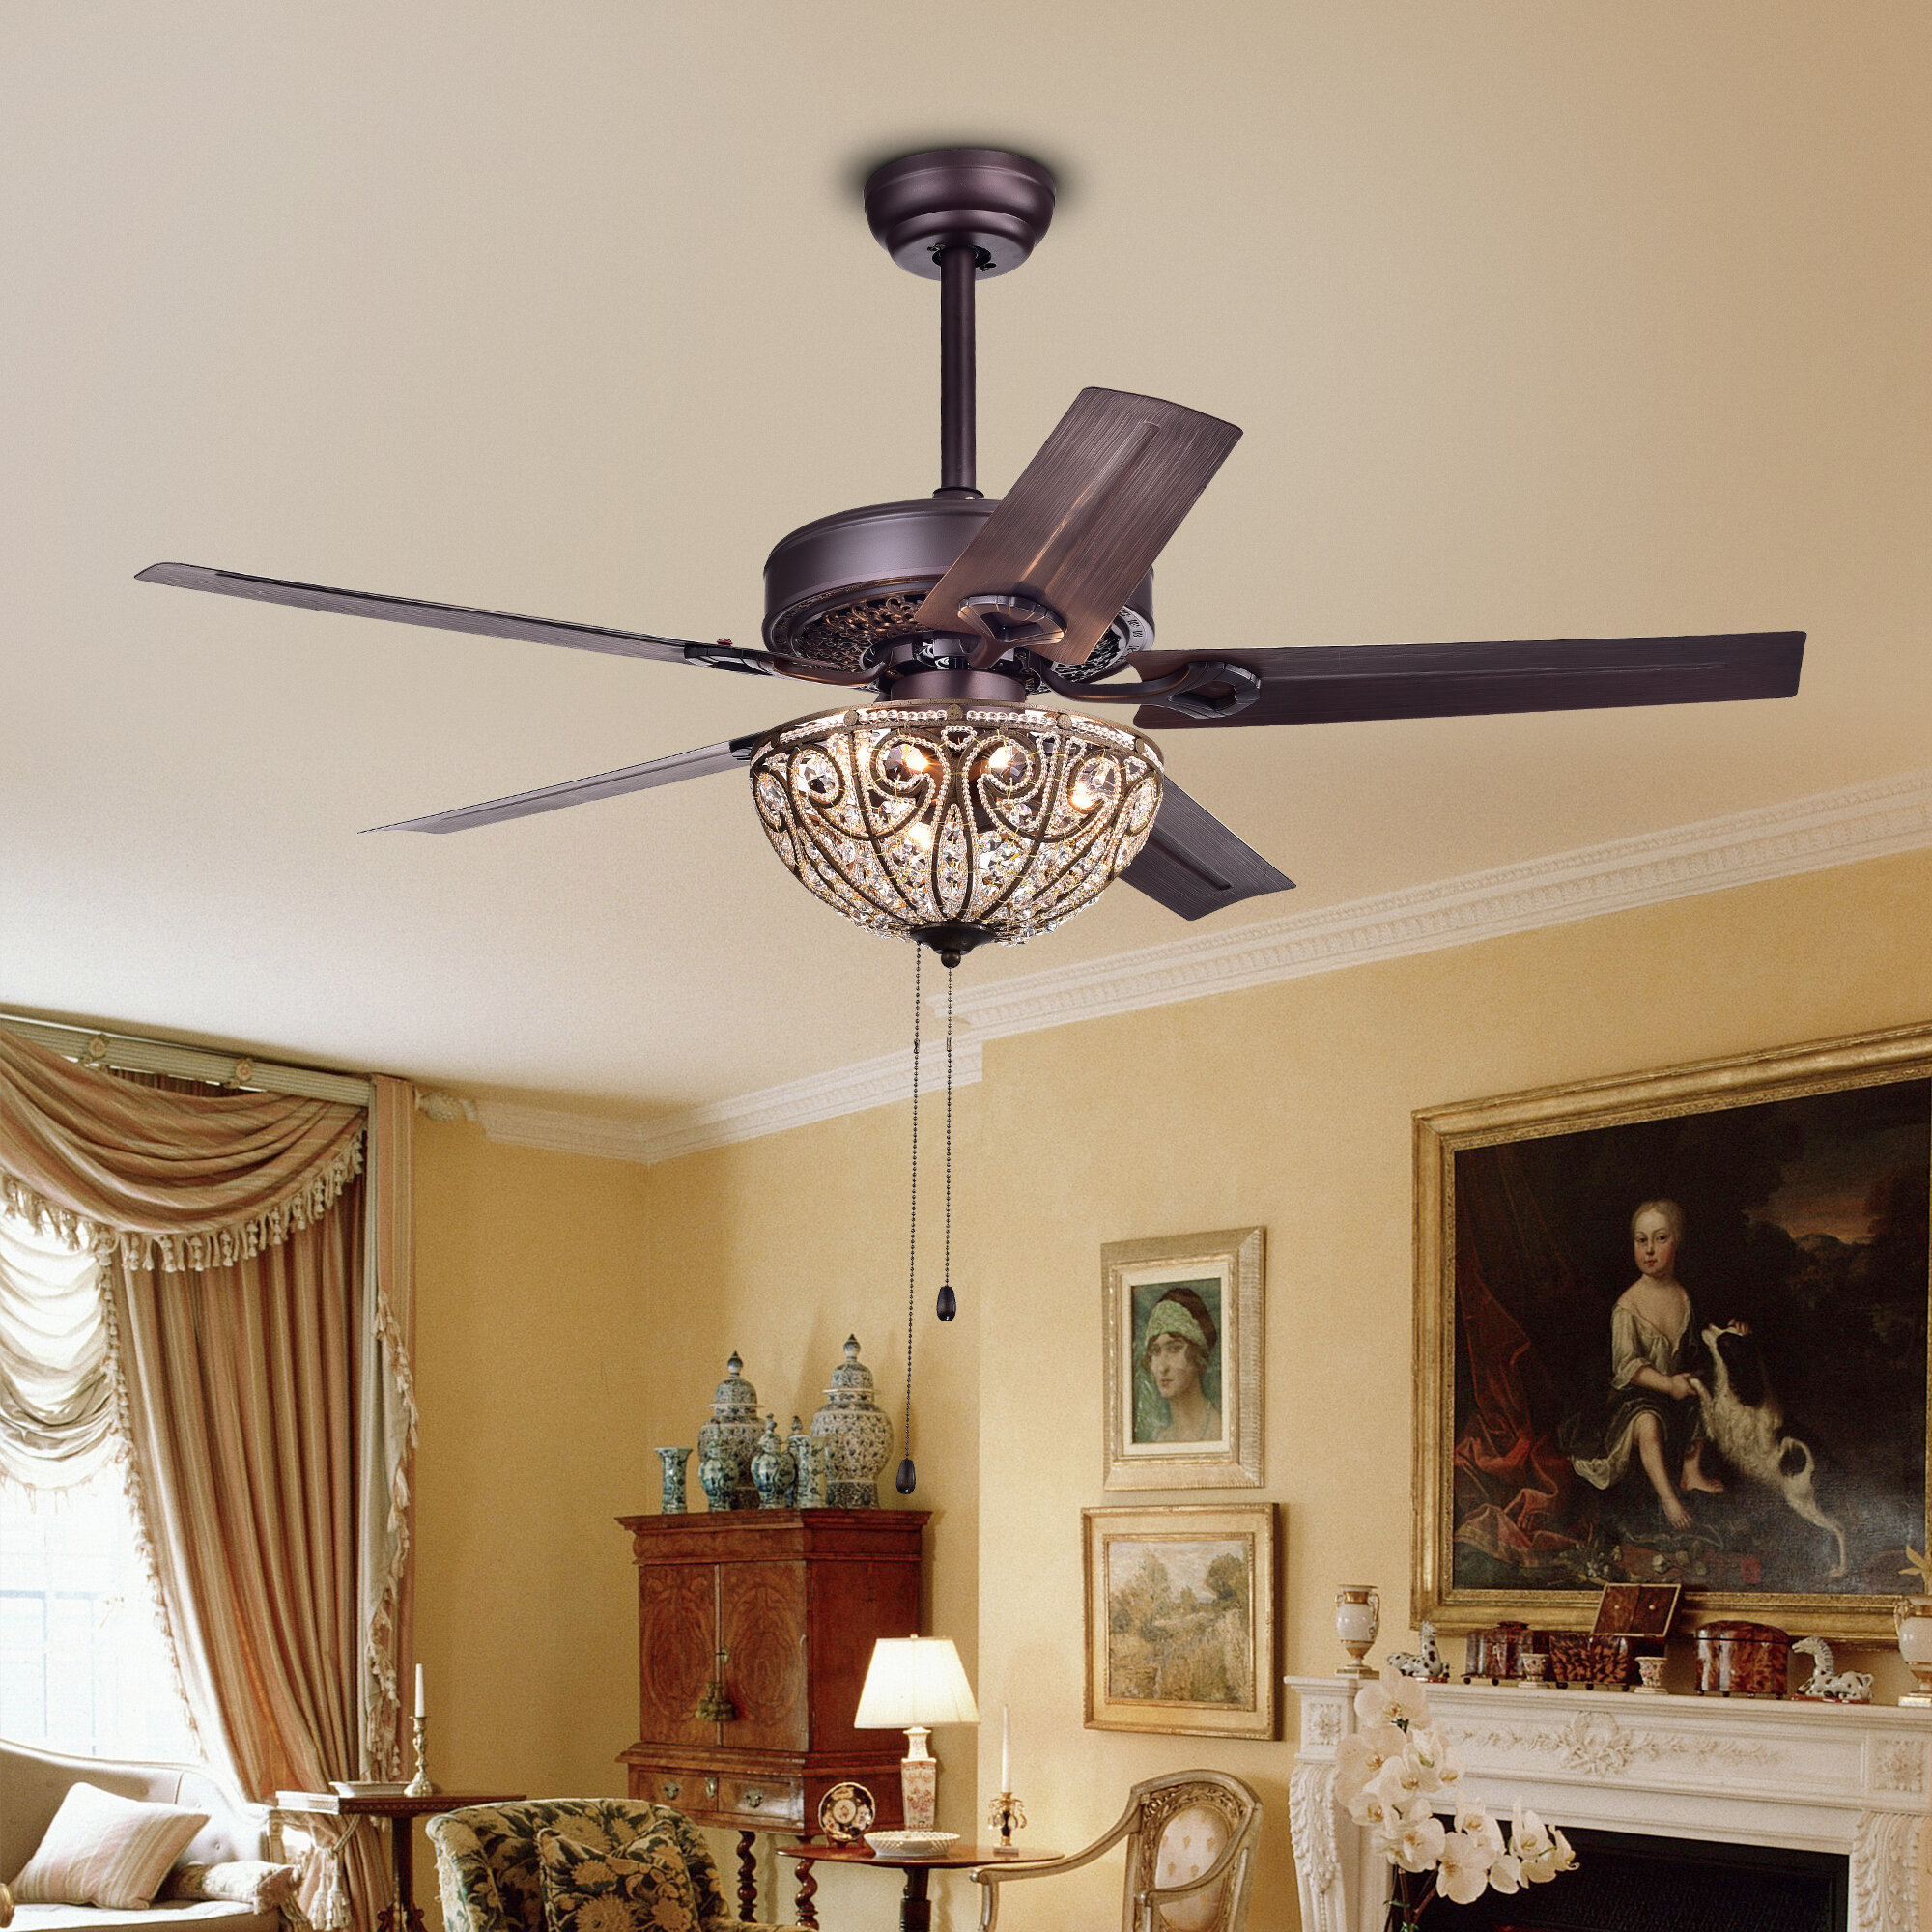 Astoria Grand 48 5 Blade Ceiling Fan Light Kit Included Reviews Wayfair